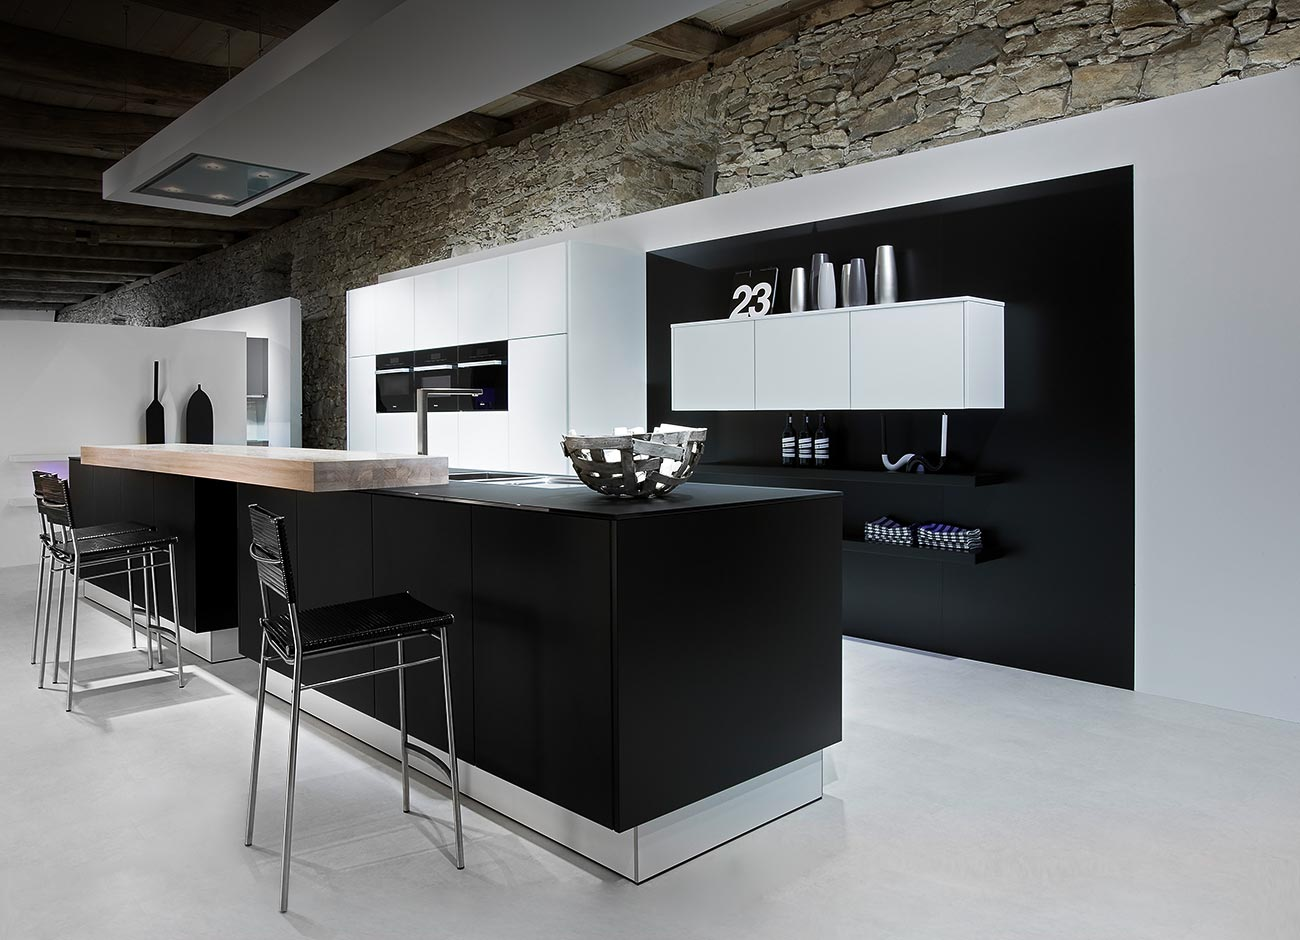 Kitchen Design Architect : ... Kitchen Designs from Warendorf » Graphic Architecture Kitchen Design